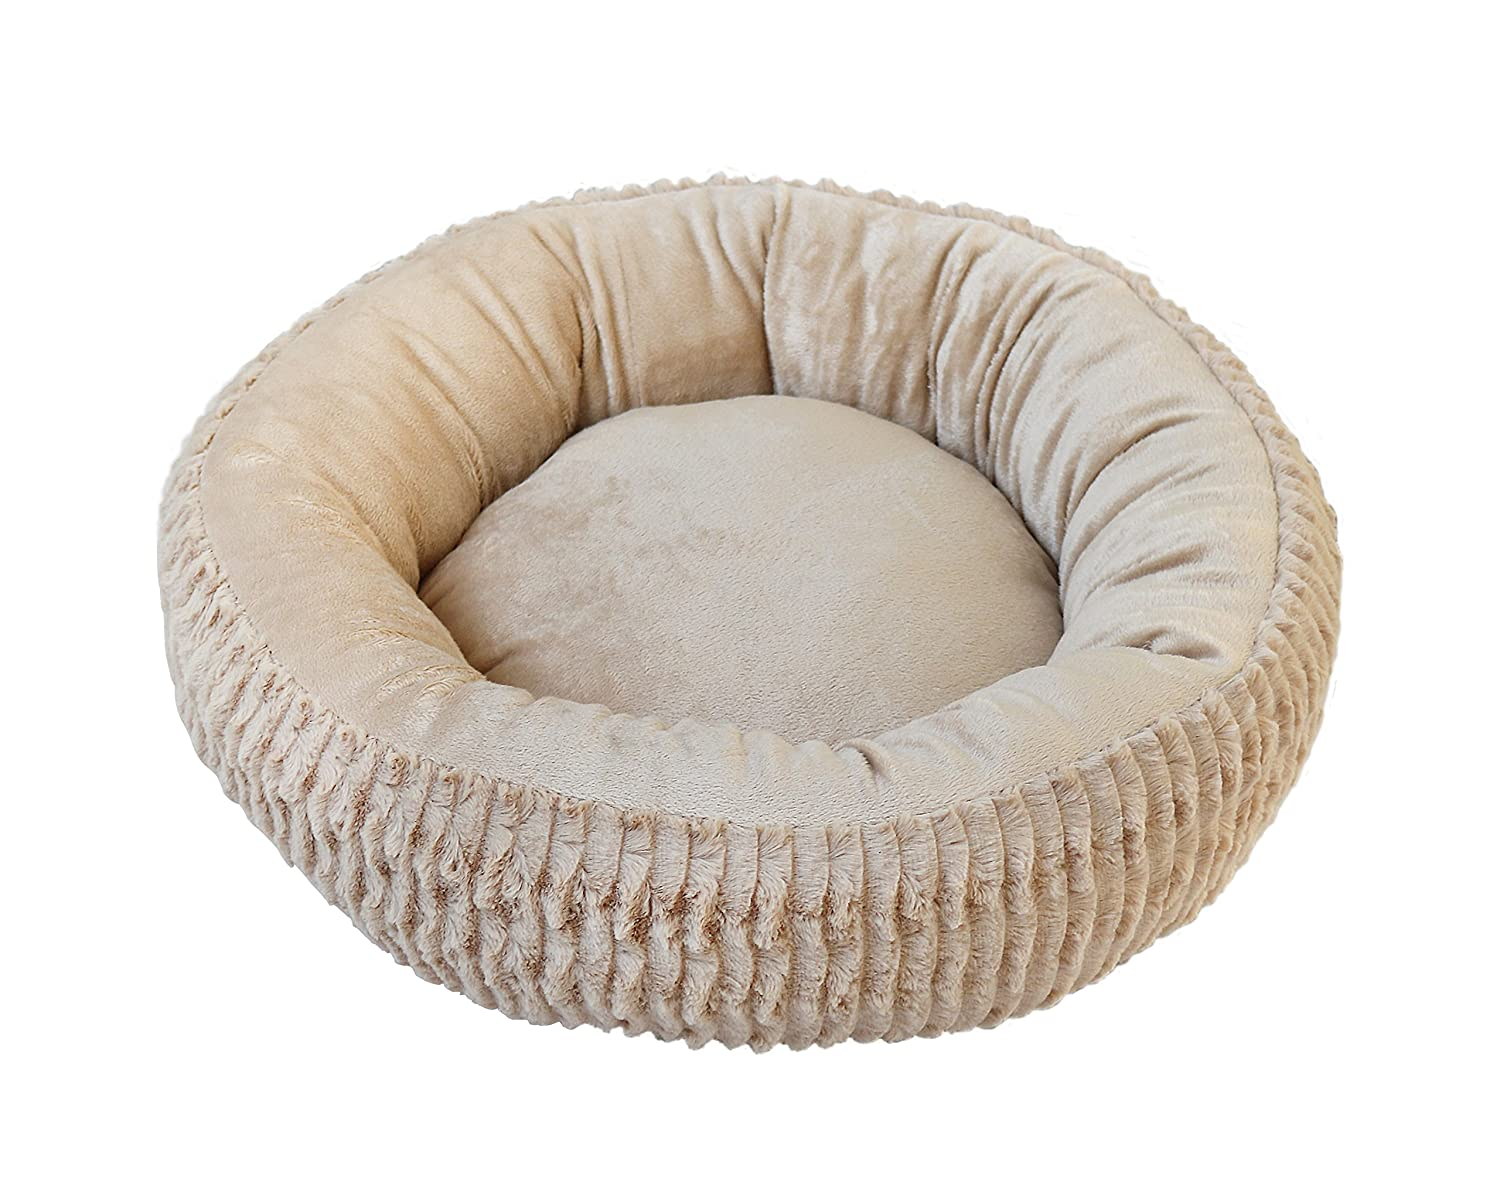 HappyCare Textiles HappyCare Textiles Luxury Fur Round Pet Bed